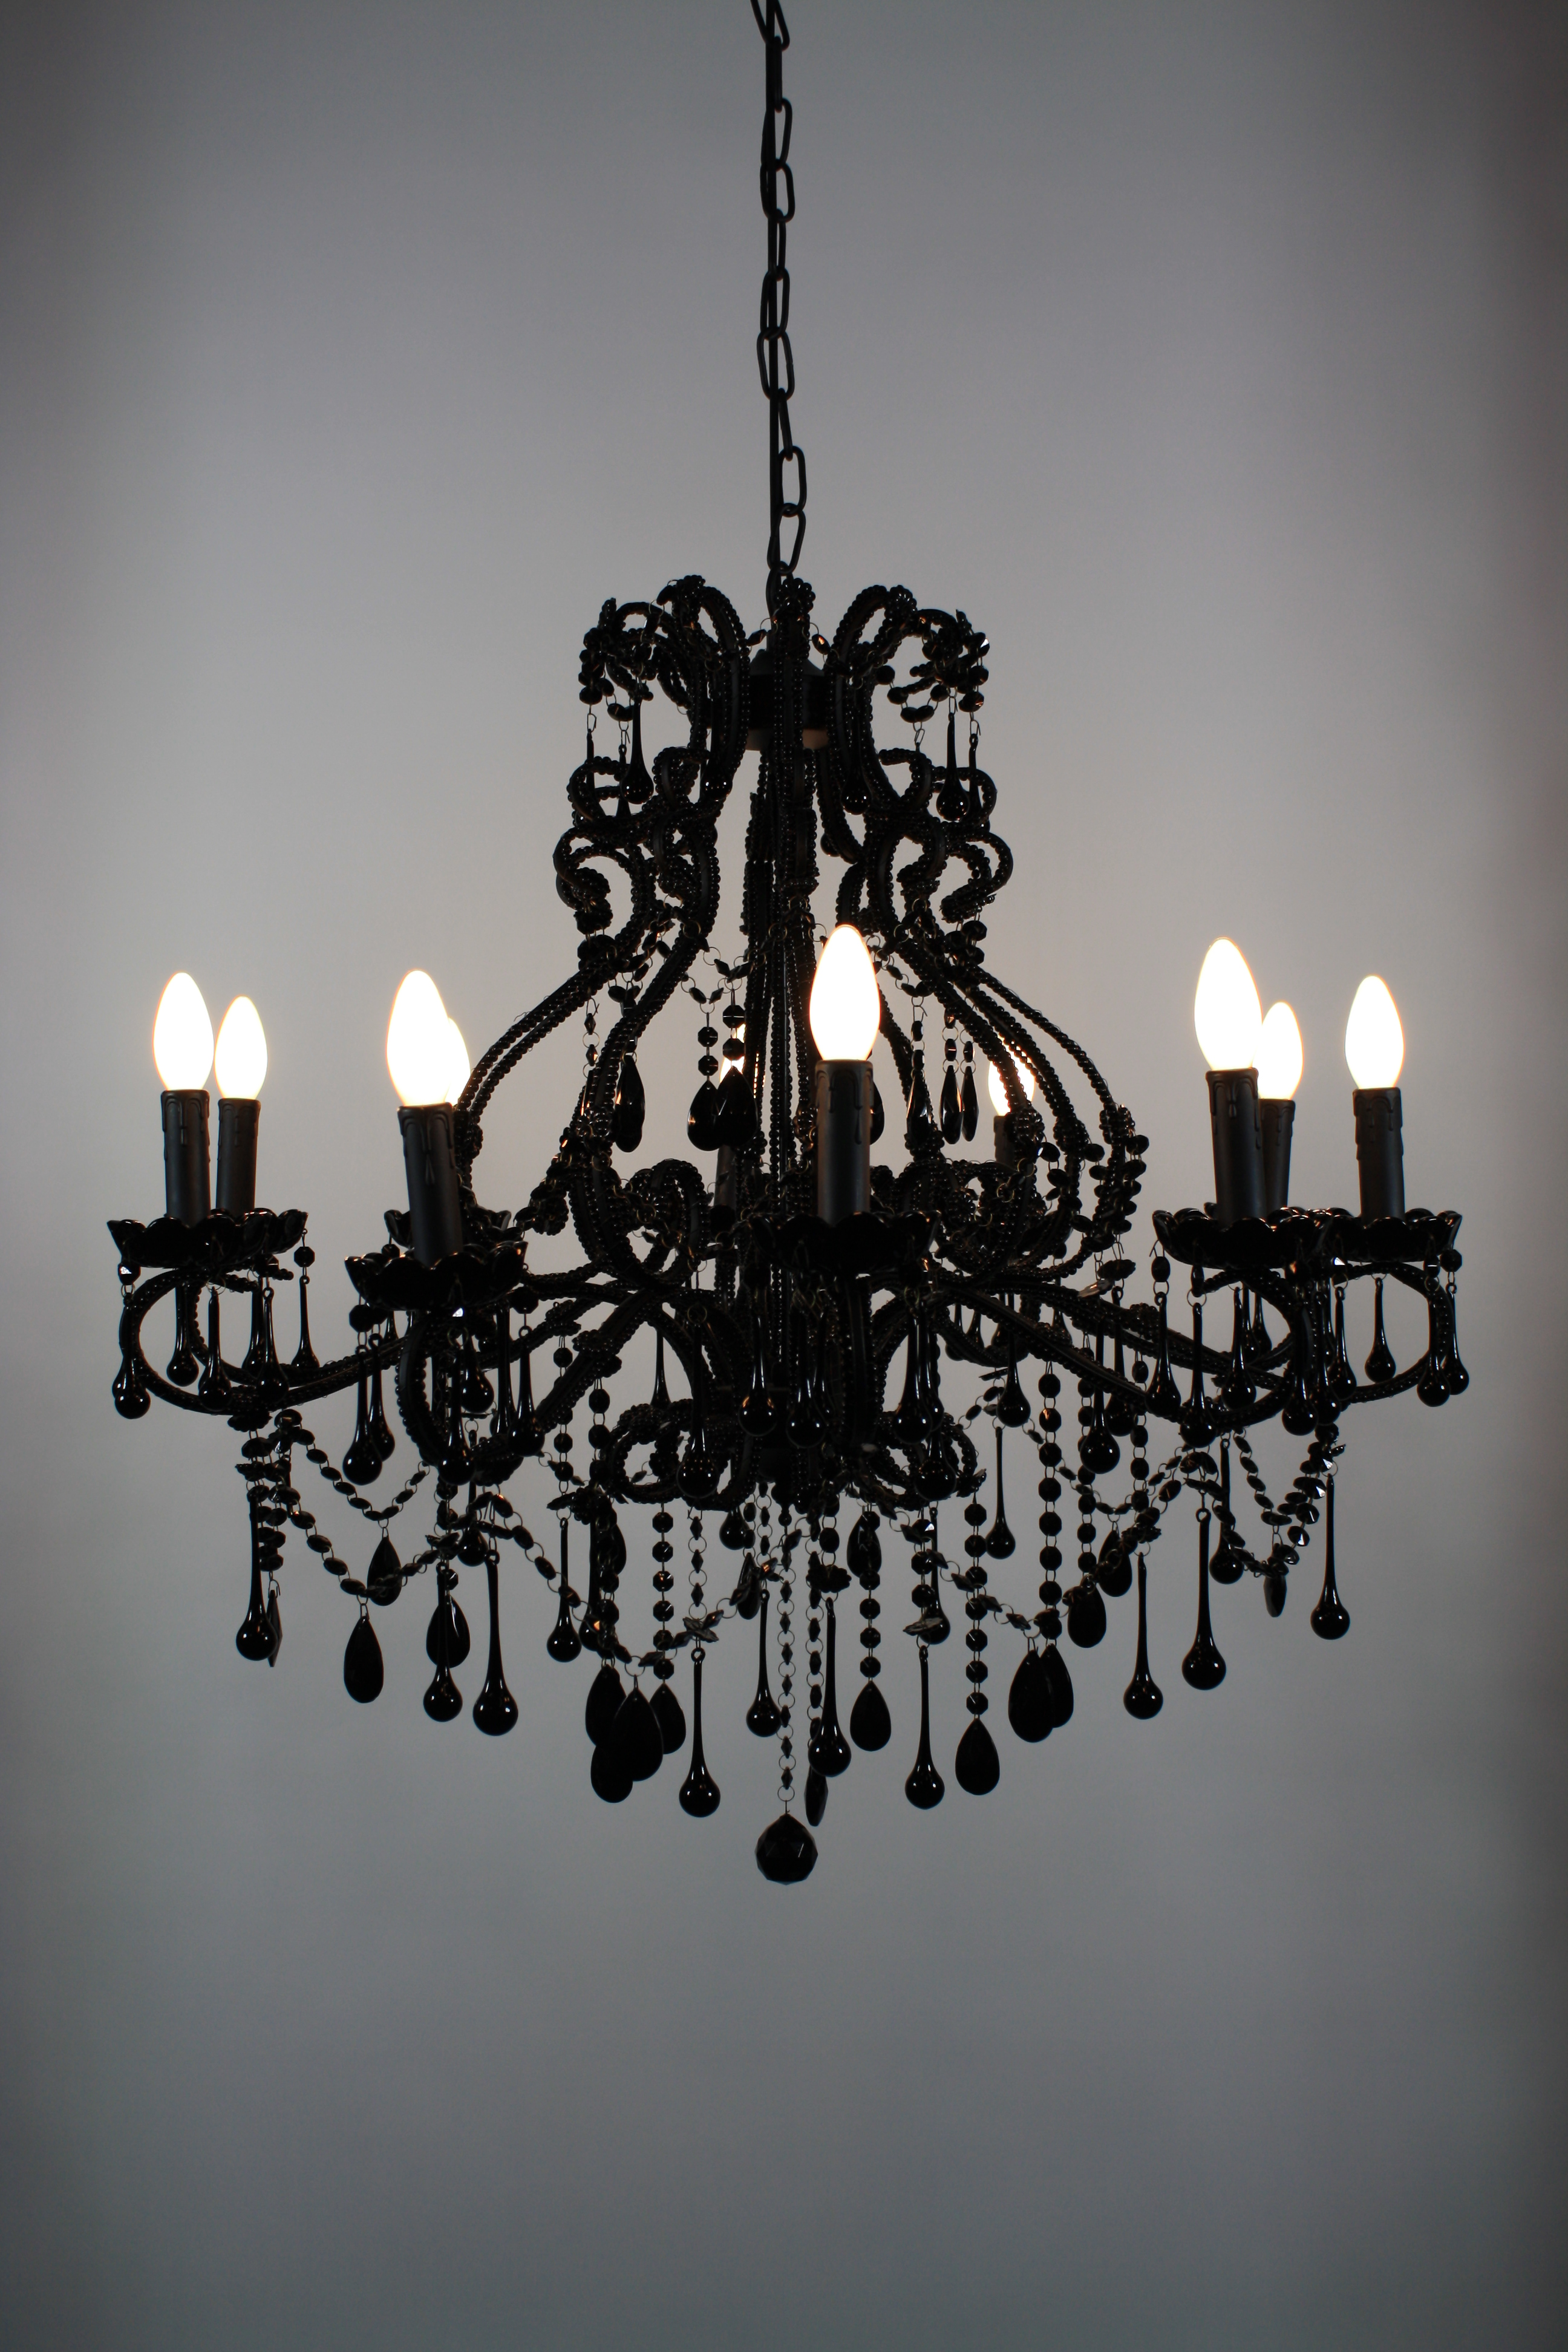 Brilliant Black Vintage Chandelier 2592 x 3888 · 2795 kB · jpeg